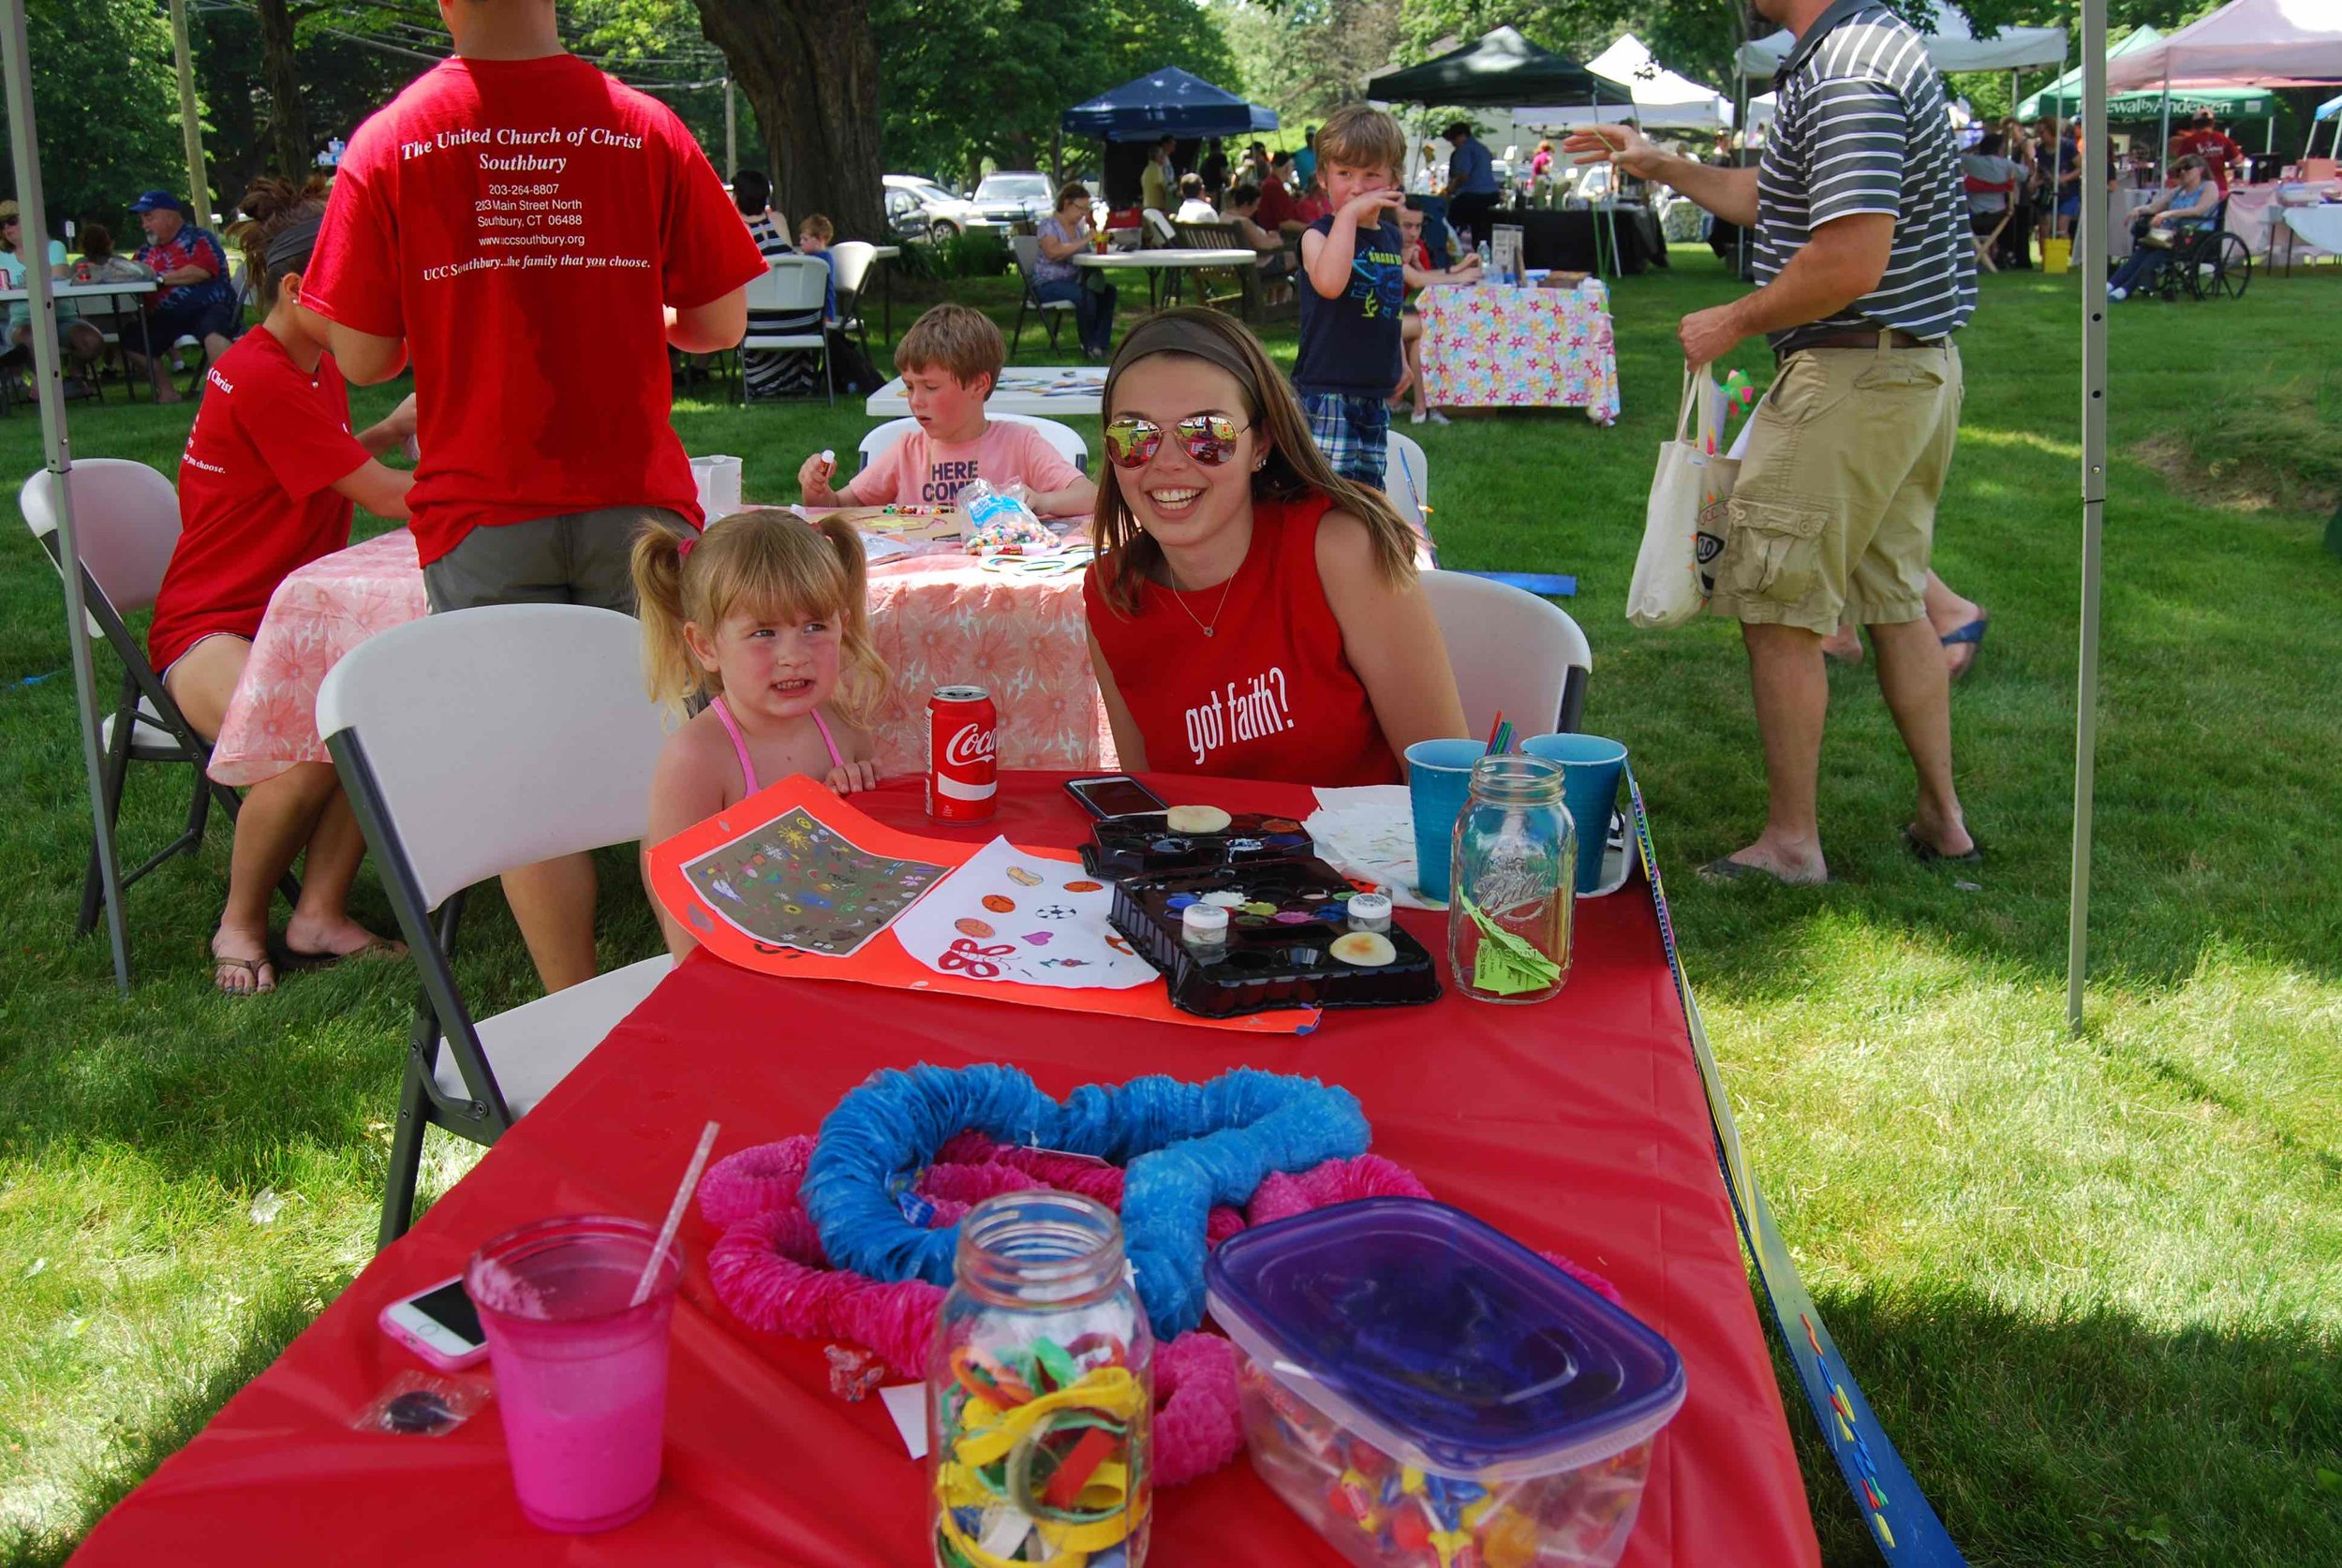 United Church of Christ, Southbury Strawberry Festival Kid's Crafts